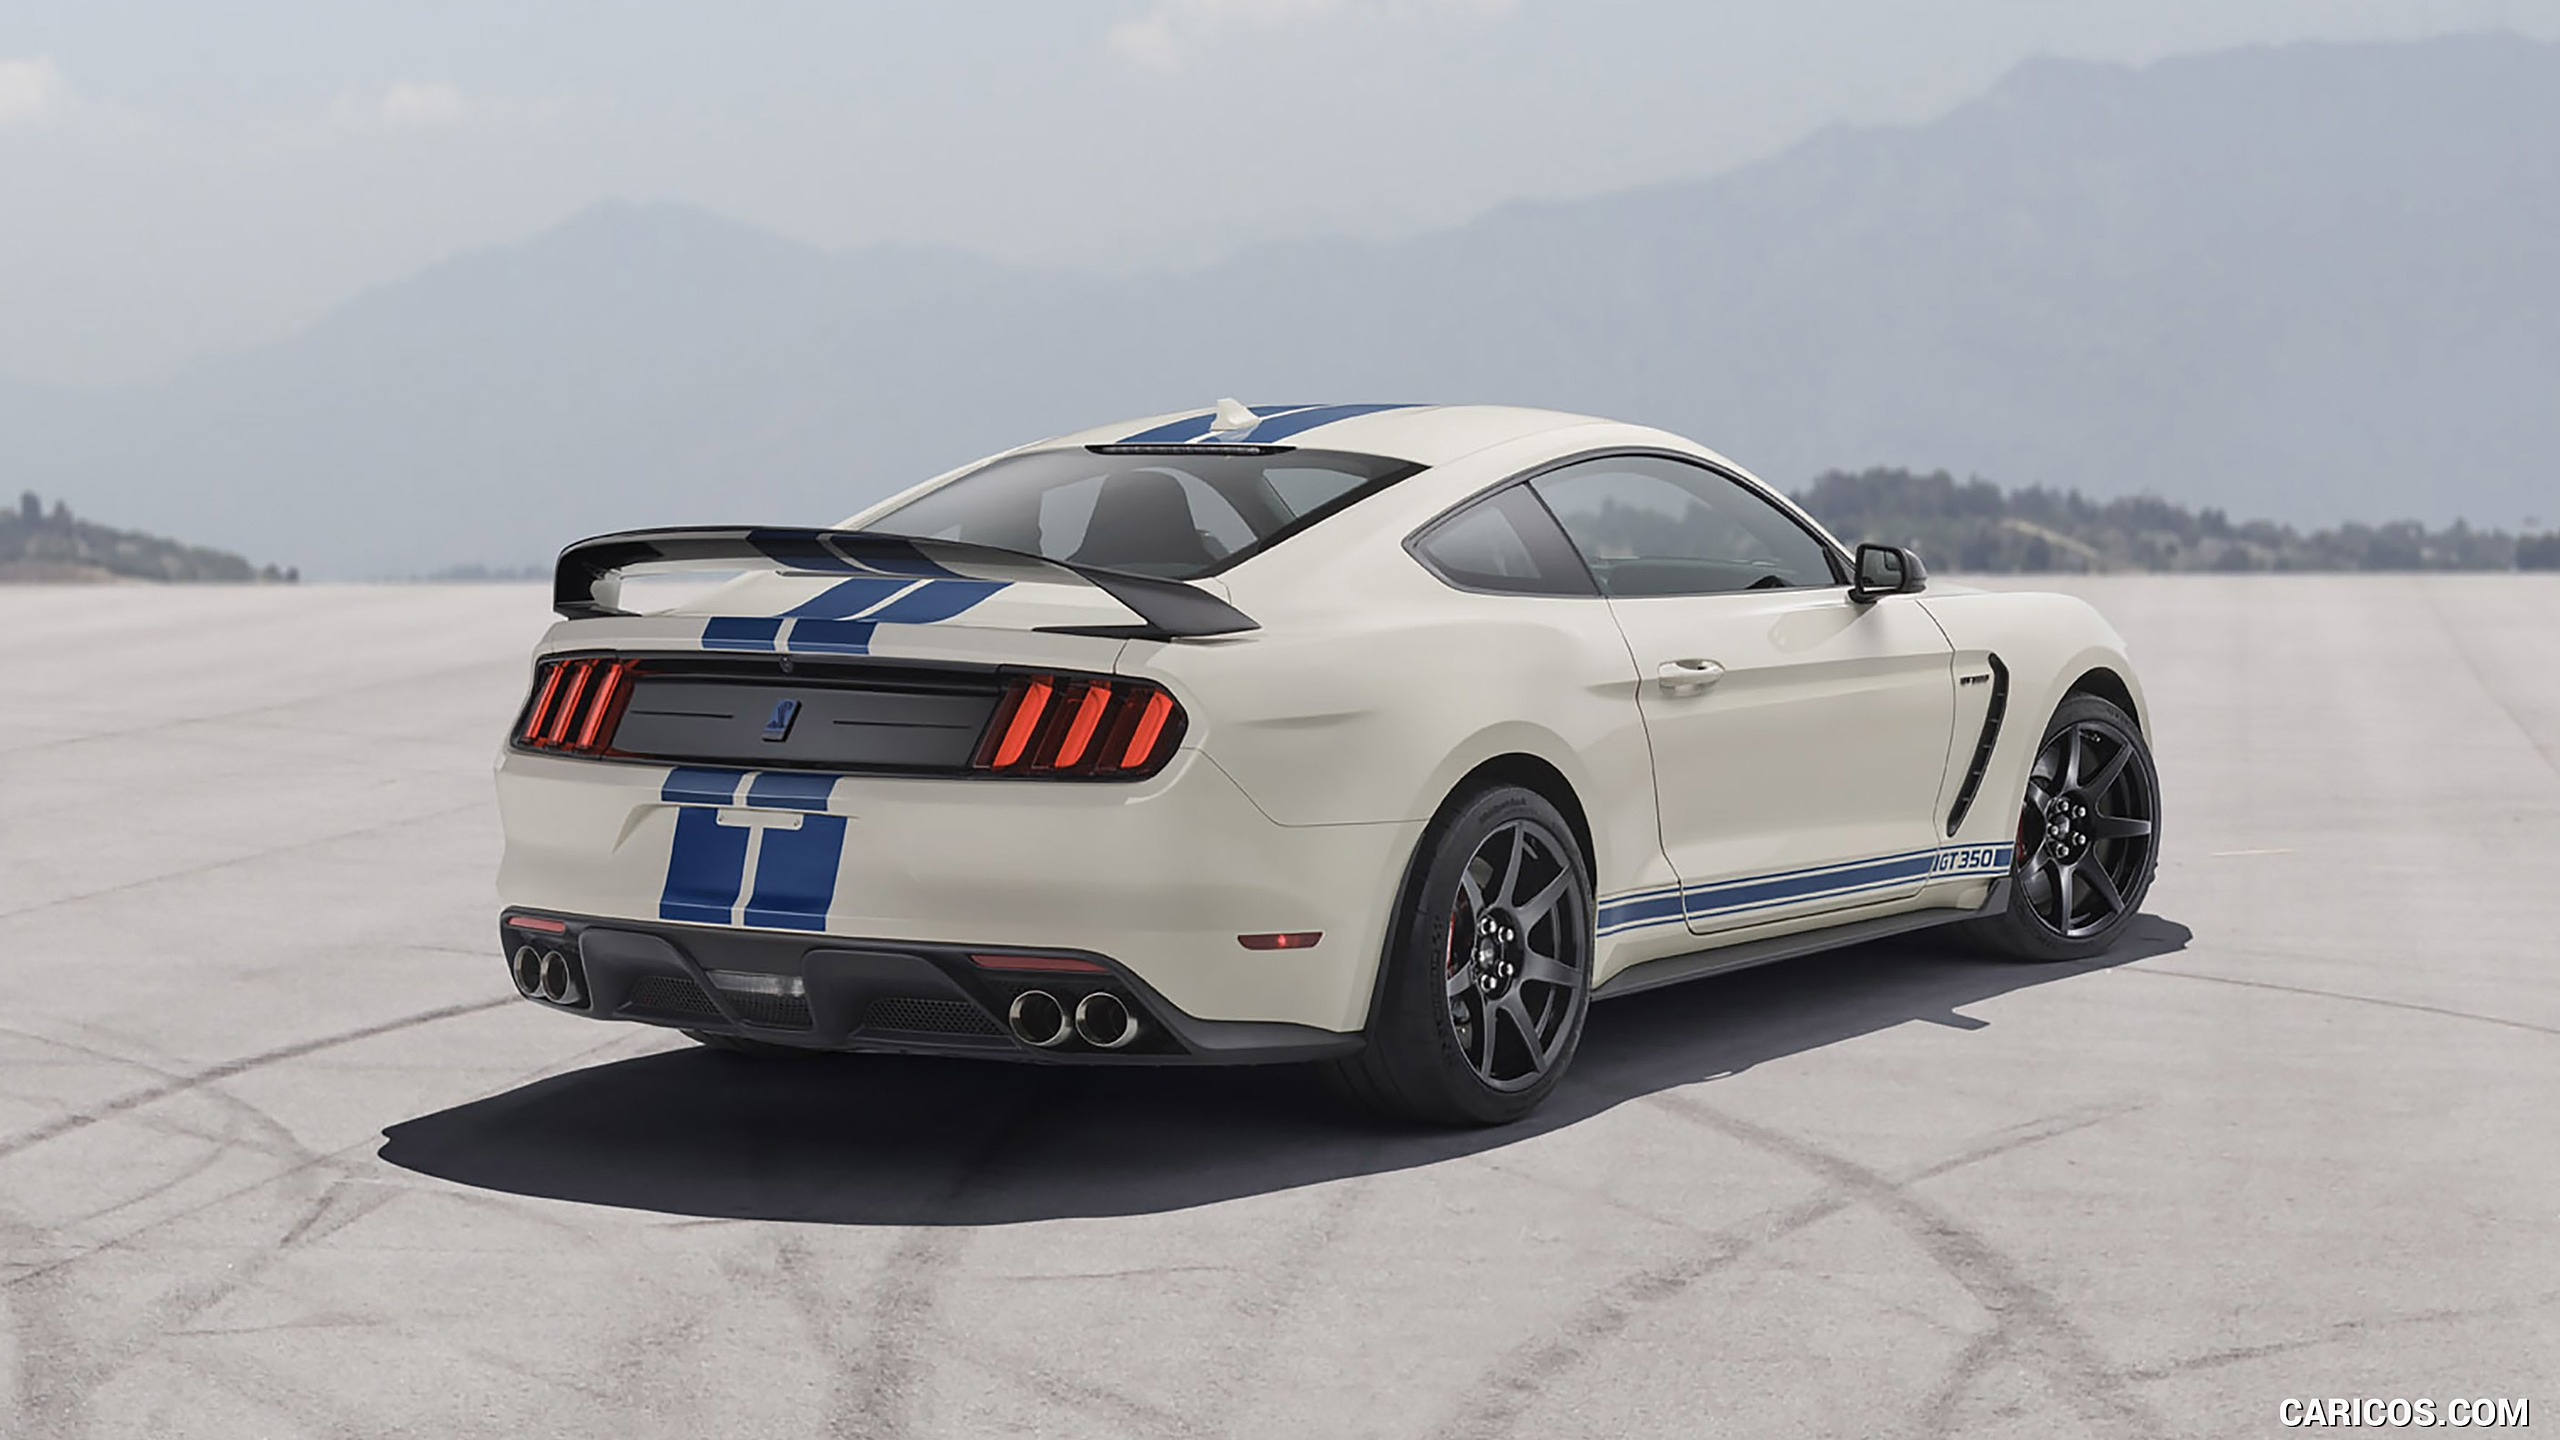 2020 Ford Mustang Shelby GT350 Heritage Edition Package   Rear 2560x1440